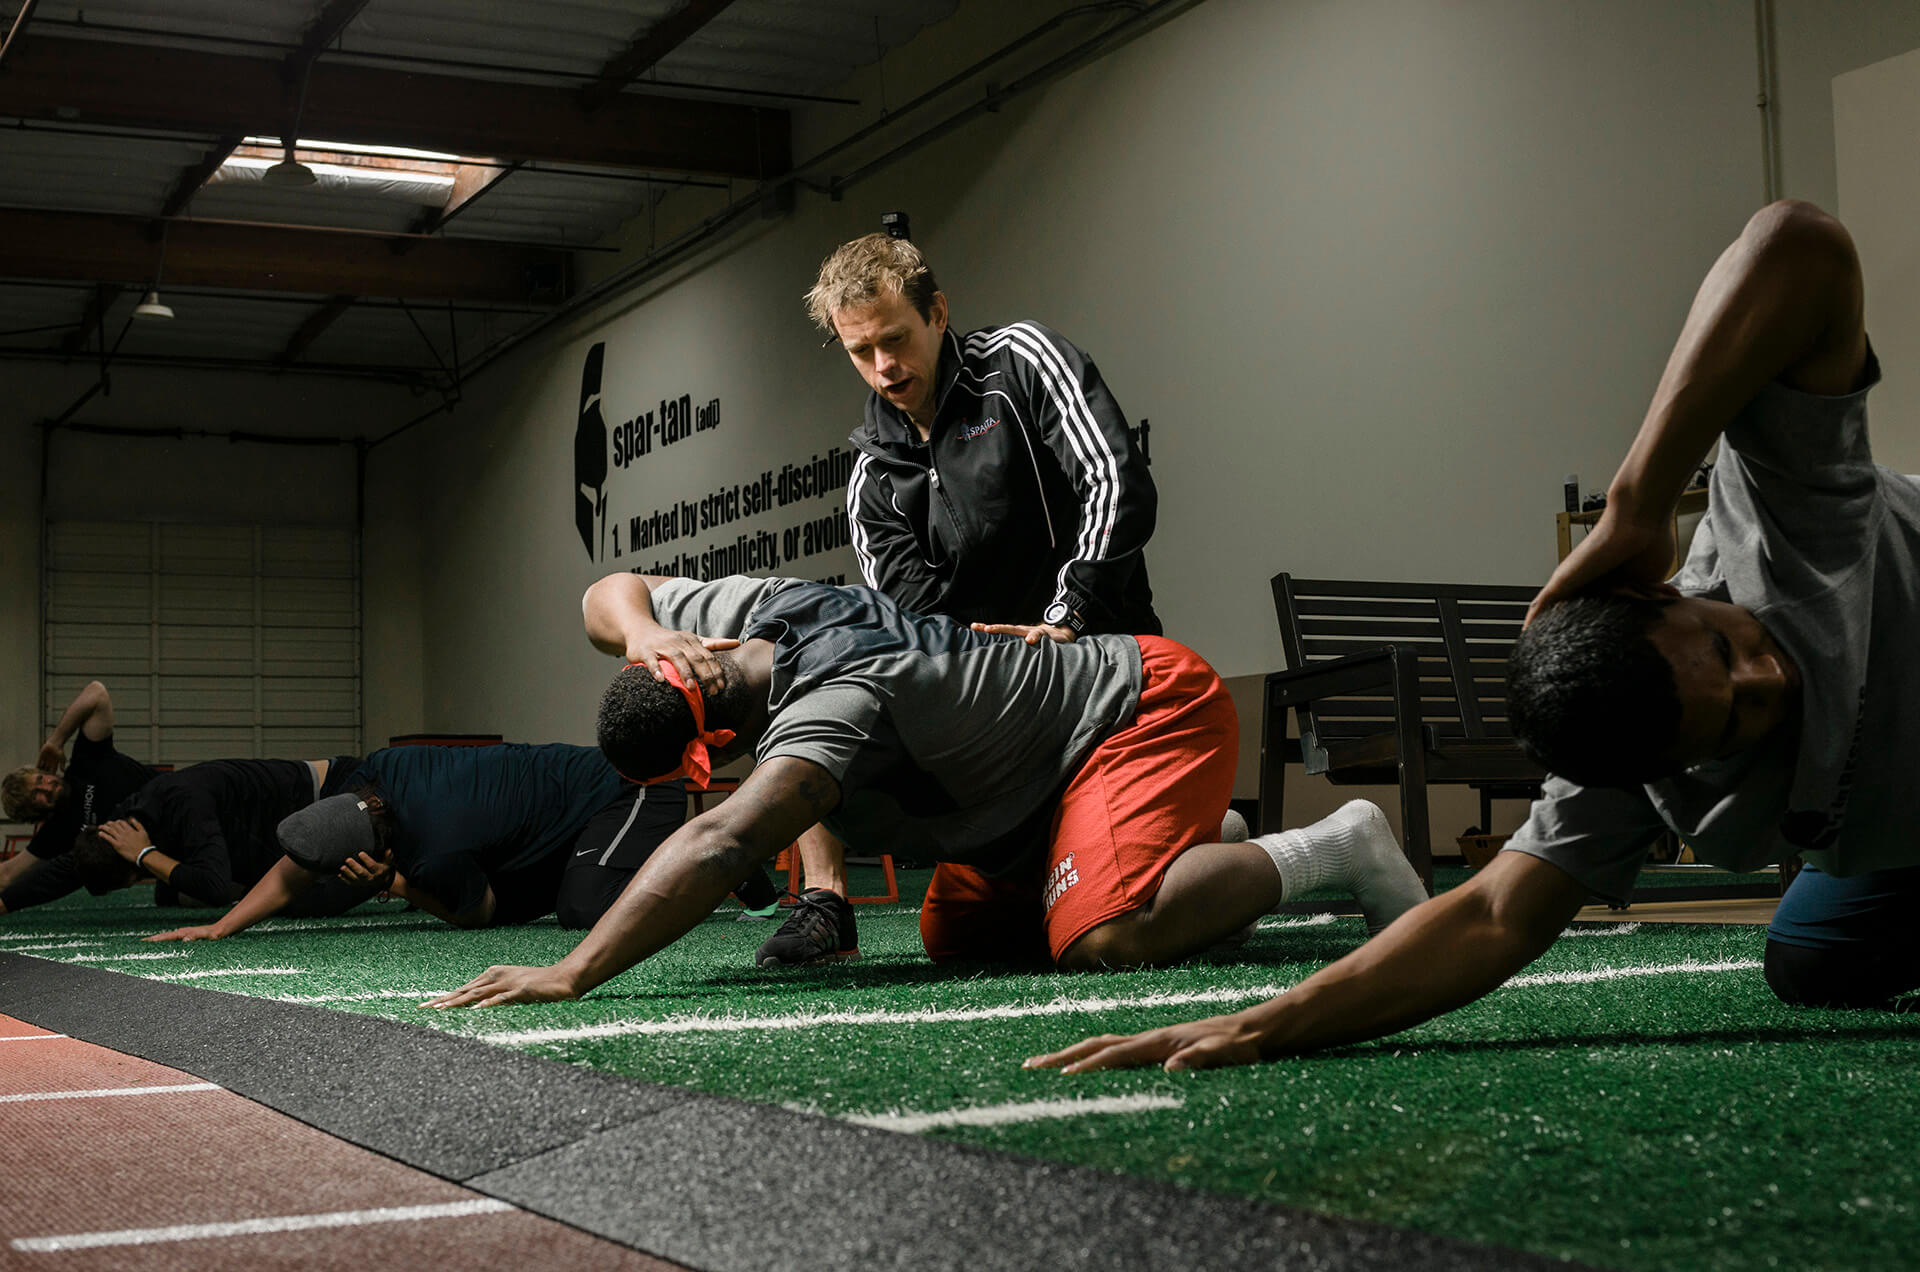 Dr. Phil Wagner, MD, working with professional athletes in Sparta Science's California training facility.